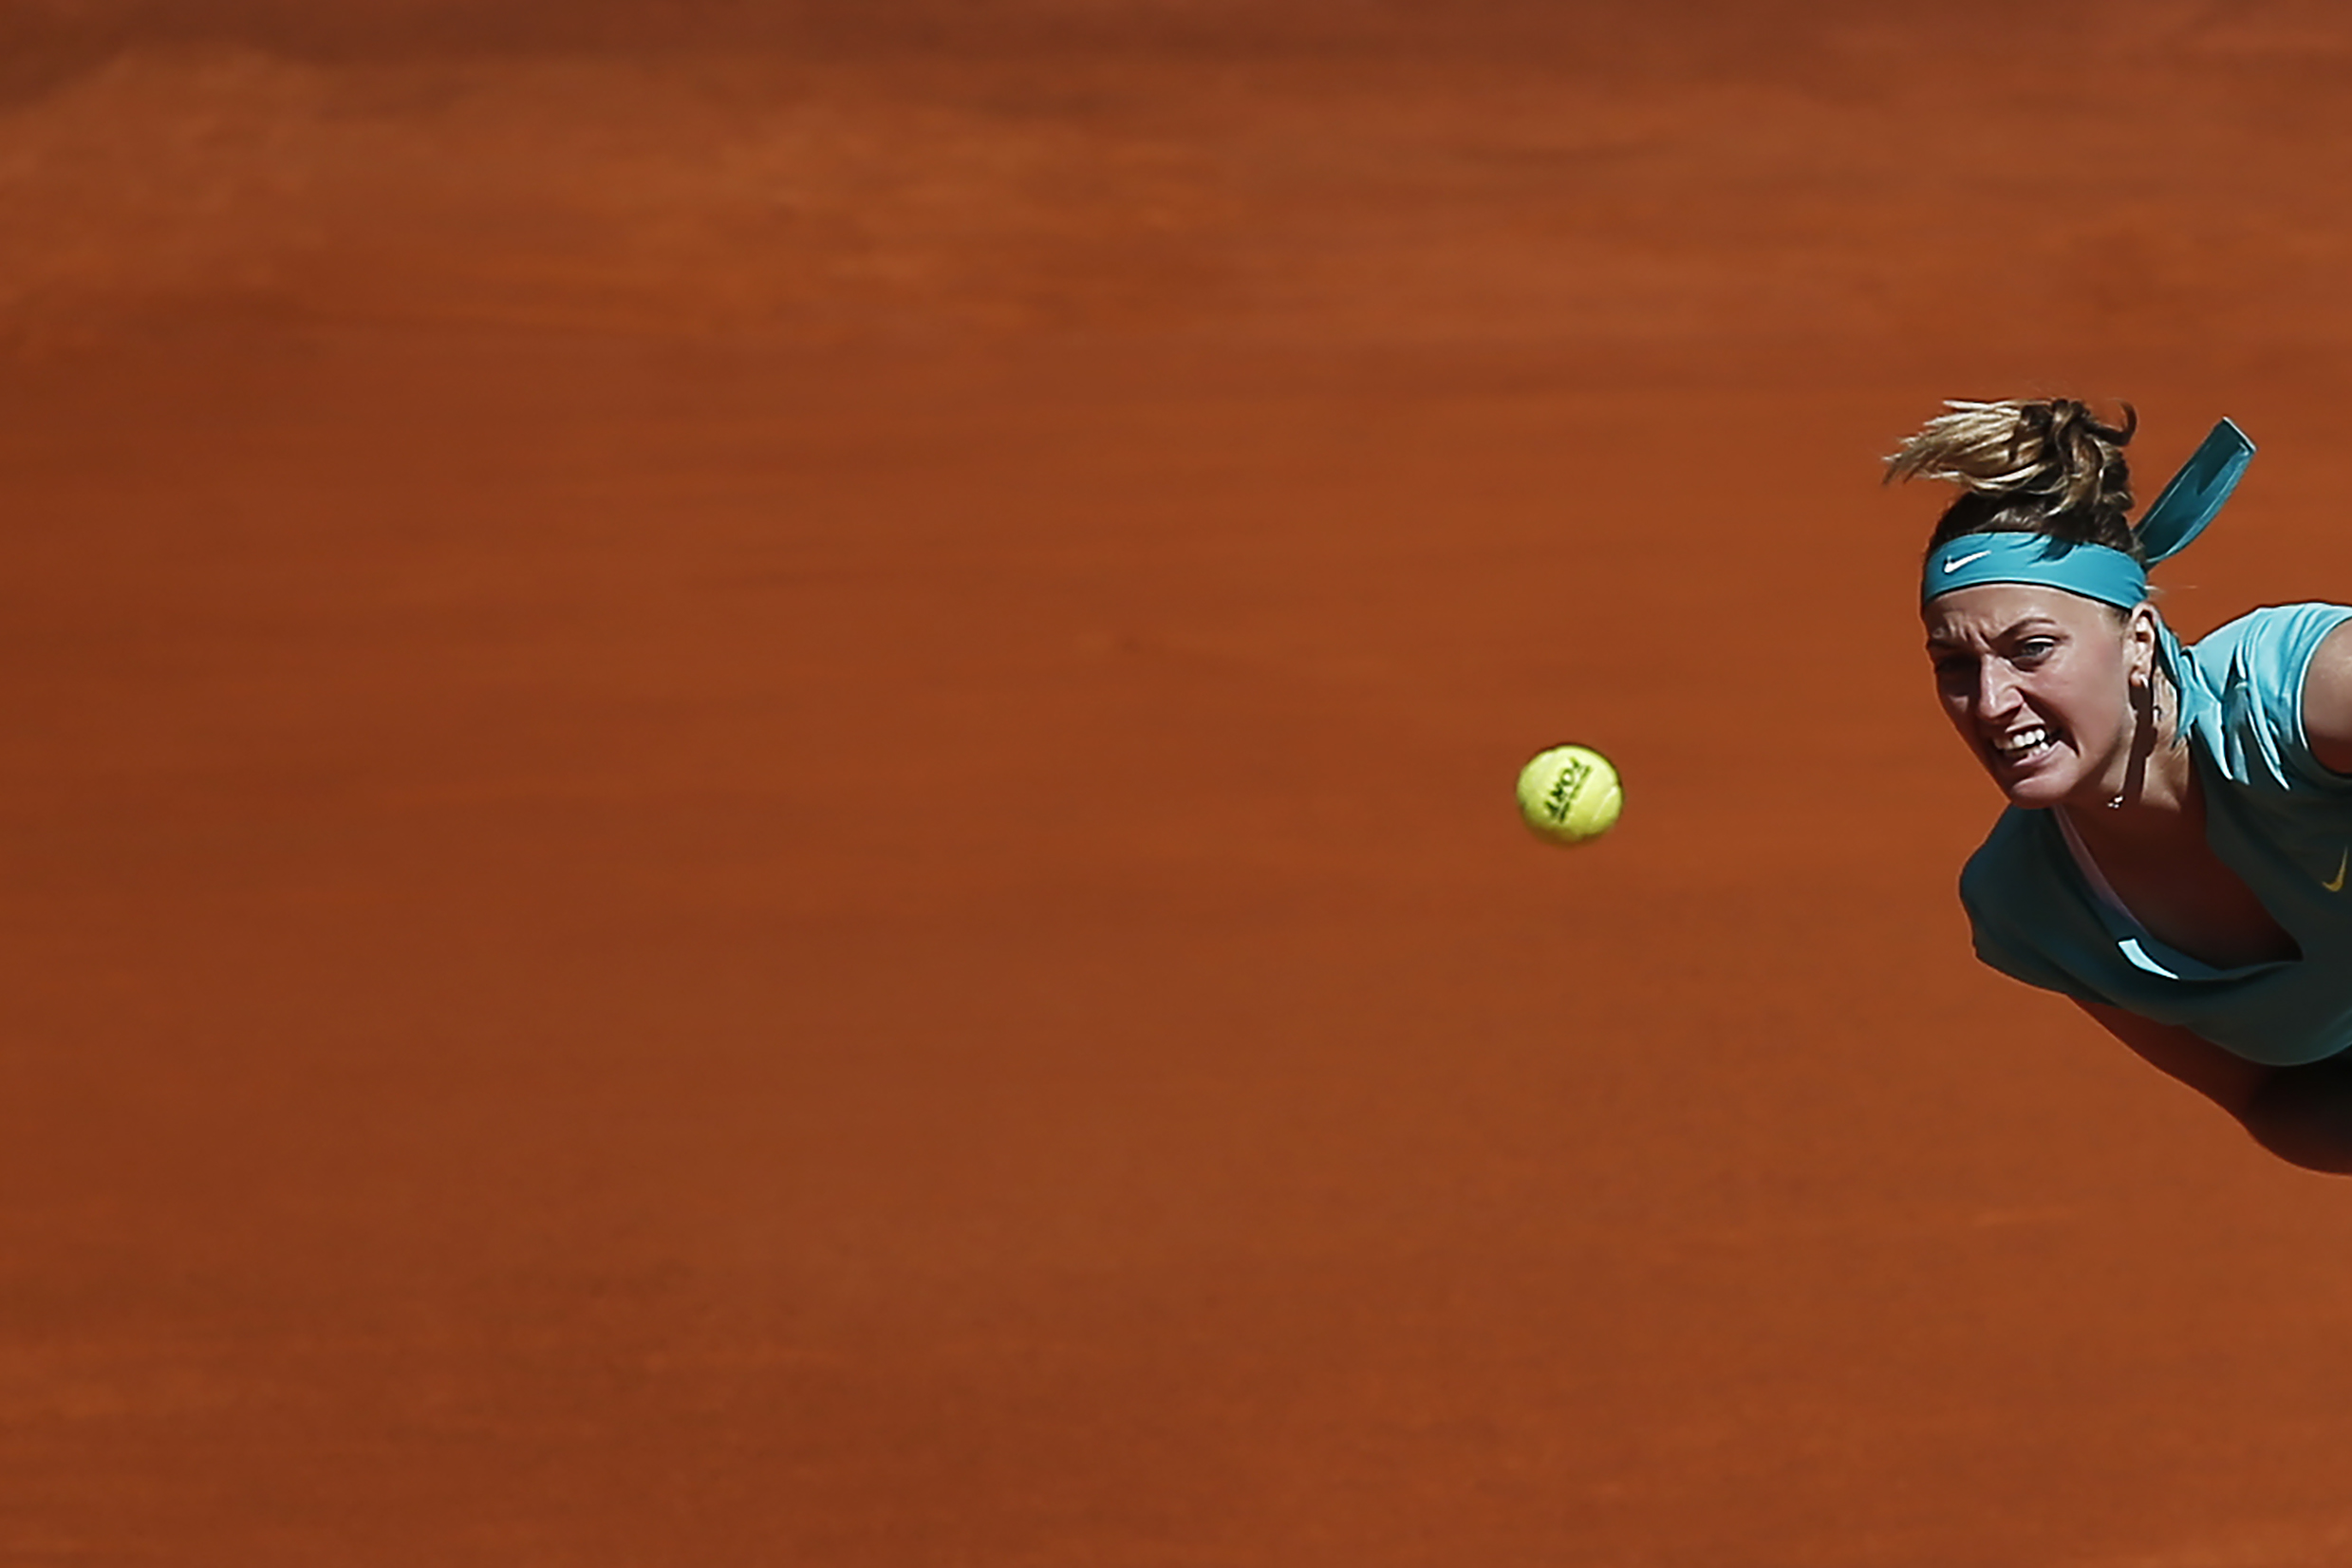 Petra Kvitova from Czech Republic serves during her Madrid Open tennis tournament match against Coco Vandeweghe from US in Madrid, Spain, Tuesday, May 5, 2015. (AP Photo/Andres Kudacki)